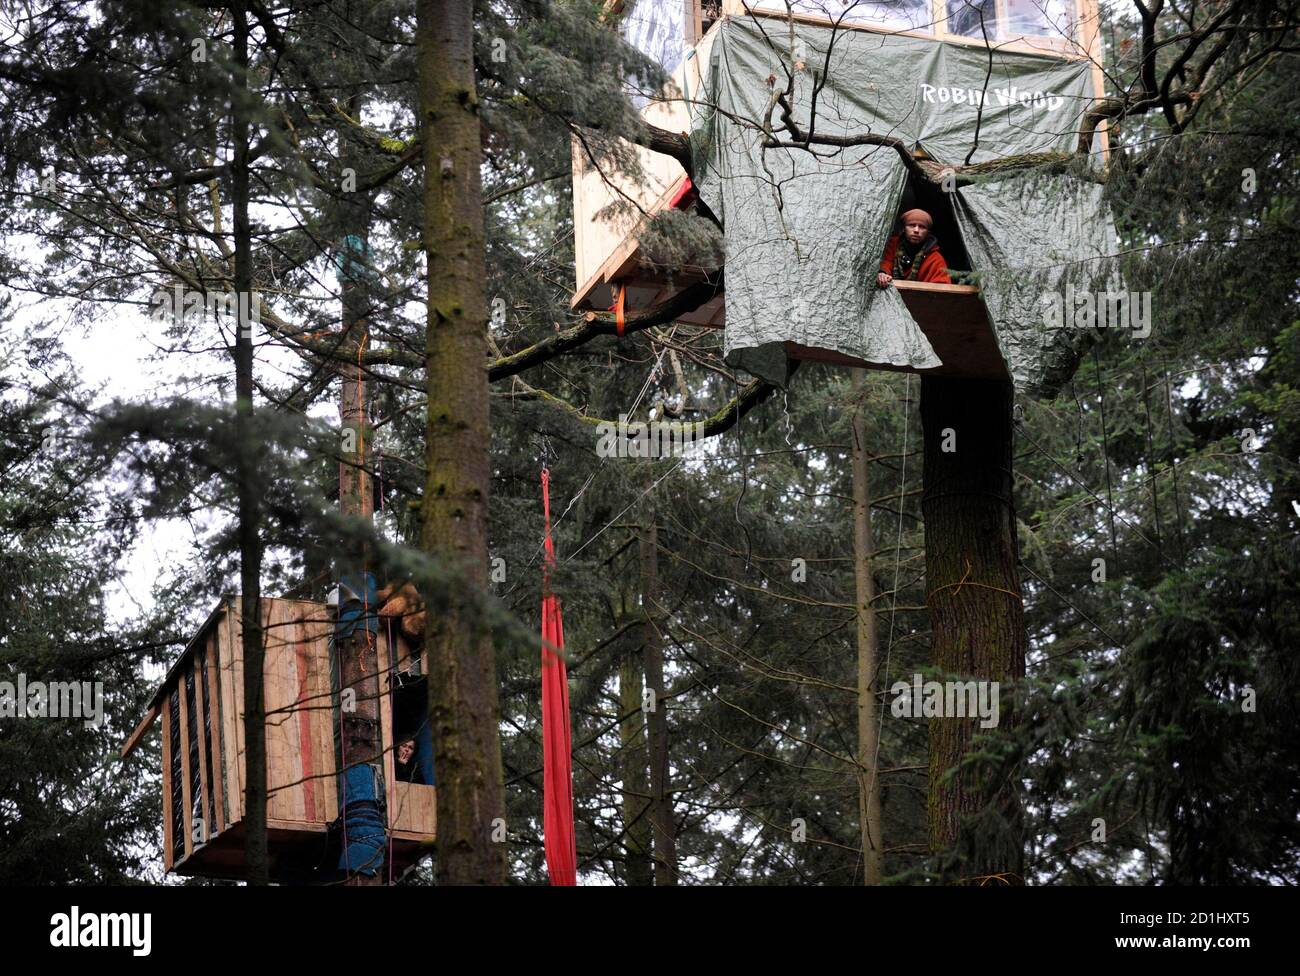 Activists of environmental organization Robin Wood observe police activities from their tree houses, built in protest against the clearing of a wooded area for a new runway for the airport, in Frankfurt January 20, 2009. Some of the demonstrators have been living in the wooded area slated for clearing as a form of protest for the past 6 months. REUTERS/Kai Pfaffenbach (GERMANY) Stock Photo